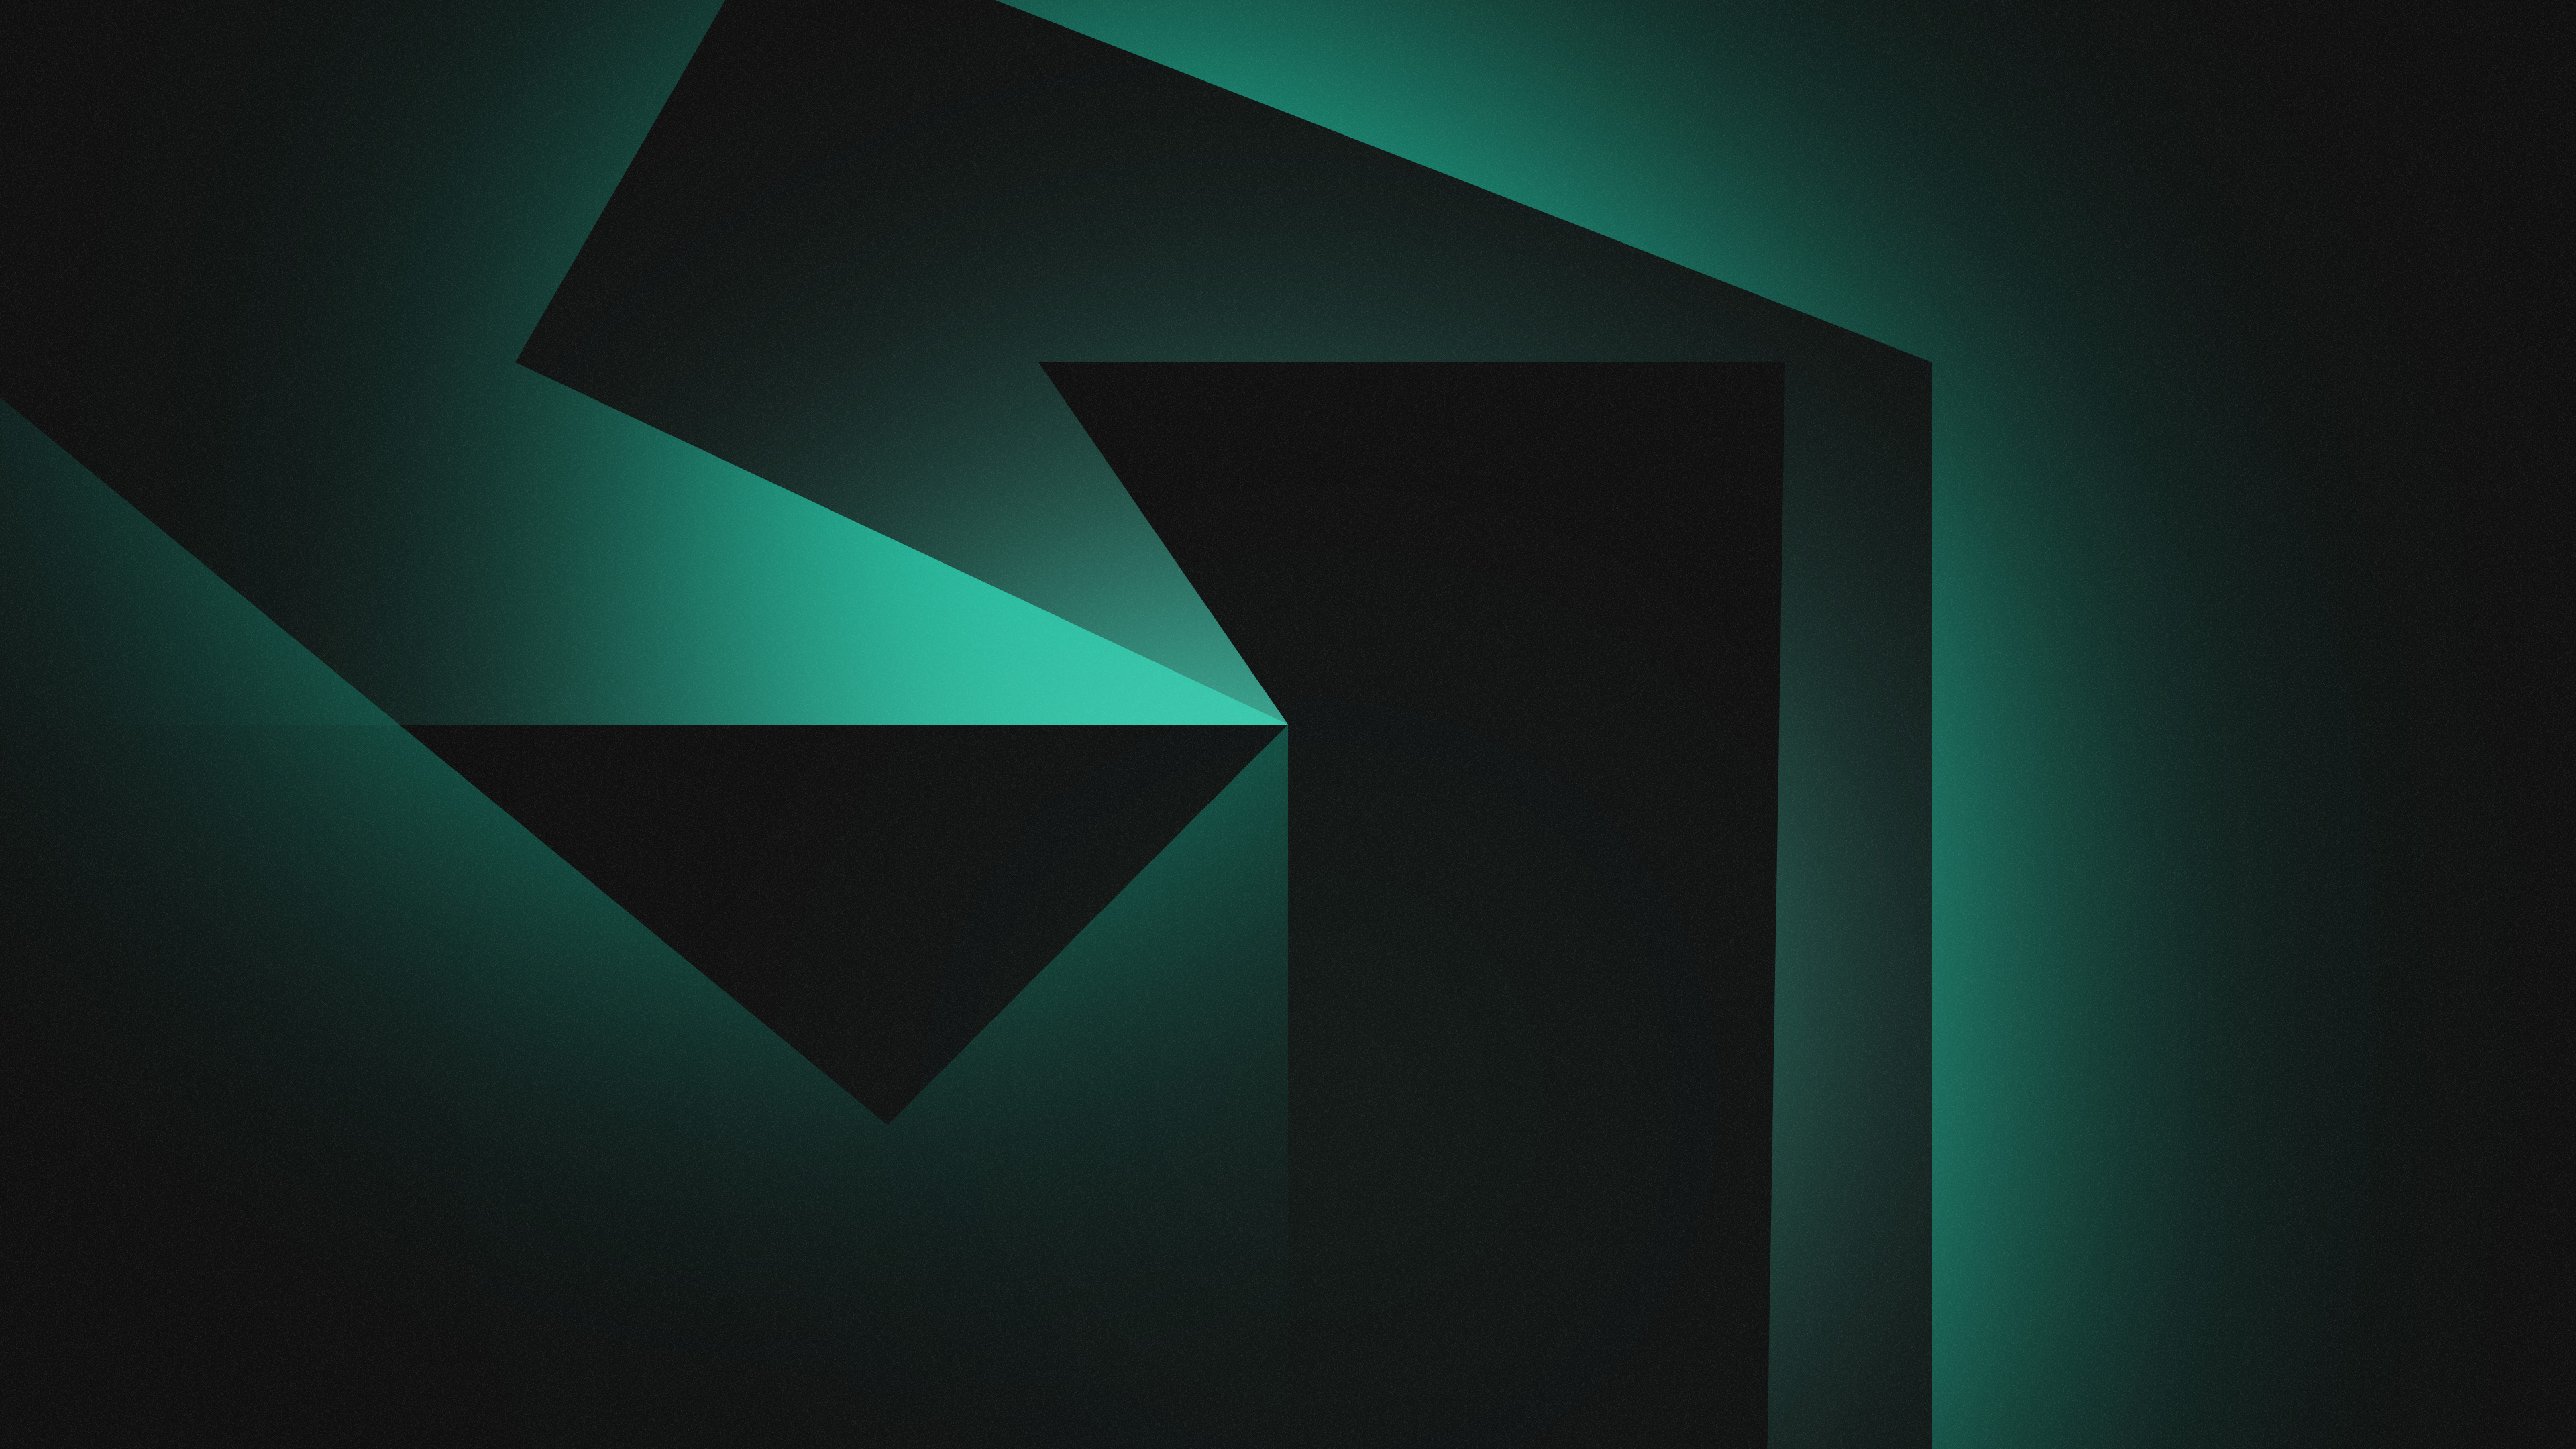 abstract 4k shapes blue side 1539371379 - Abstract 4k Shapes Blue Side - shapes wallpapers, hd-wallpapers, graphics wallpapers, dark wallpapers, behance wallpapers, abstract wallpapers, 4k-wallpapers